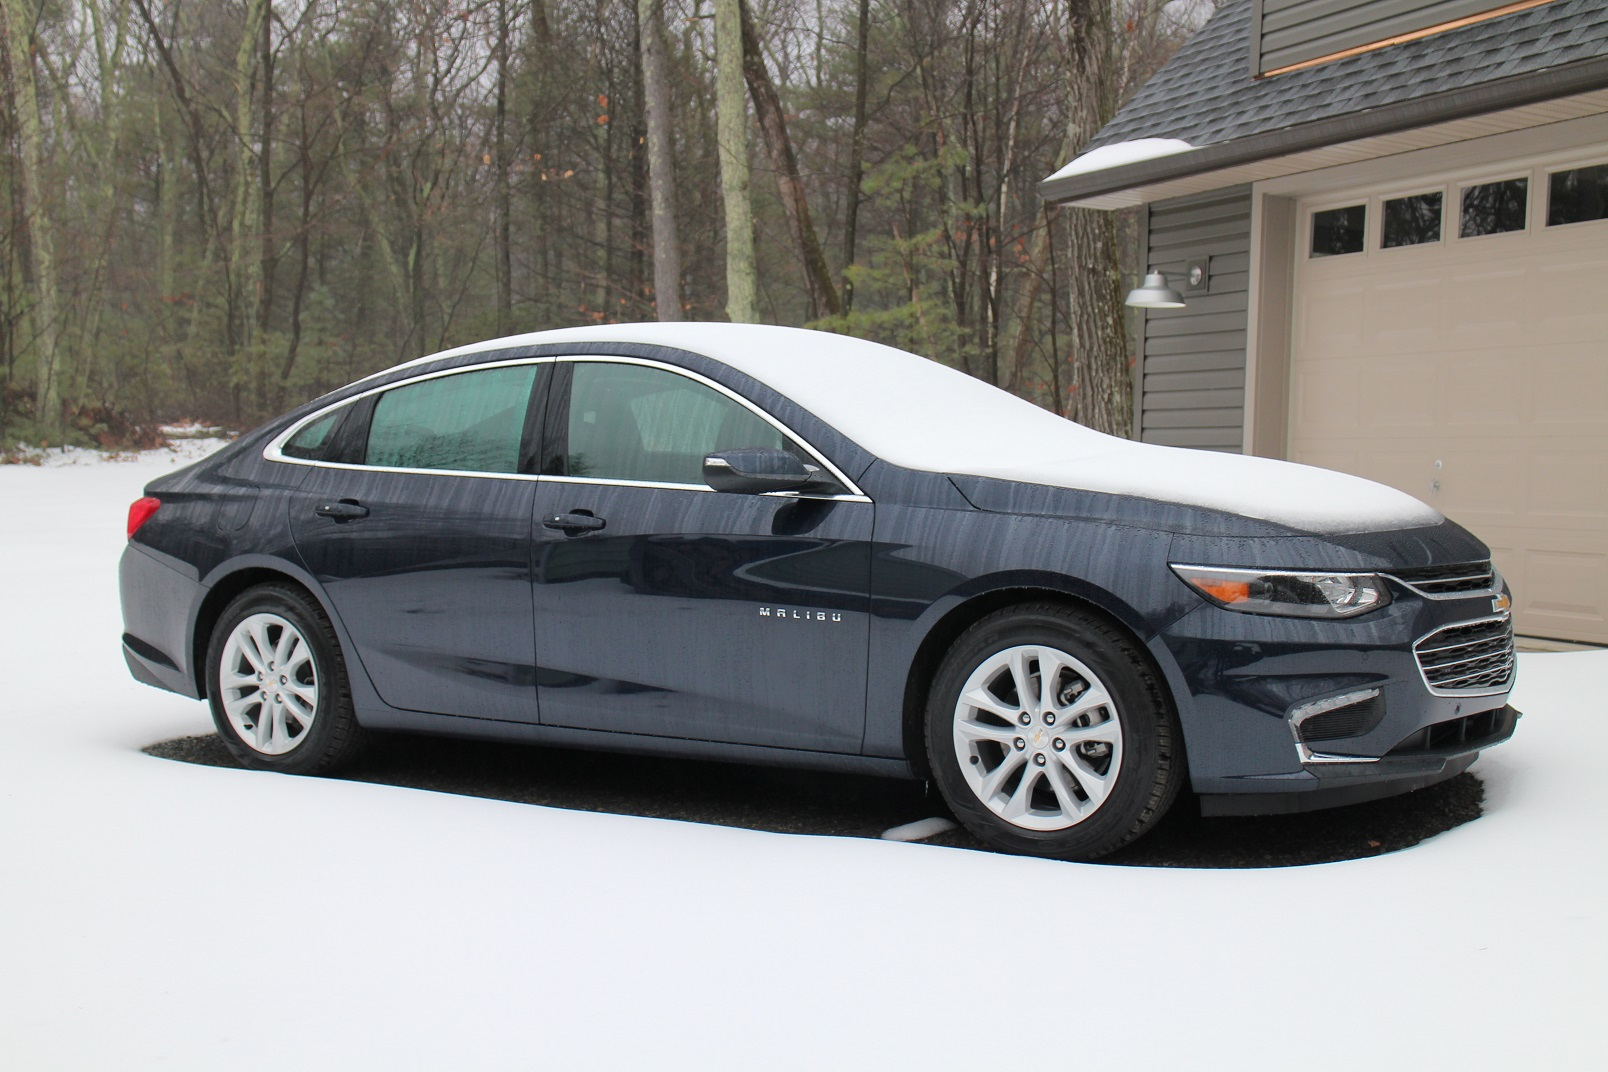 2017 Ford Fusion Mpg >> 2016 Chevrolet Malibu Hybrid: First Drive Of Sedan Using Volt Hybrid System